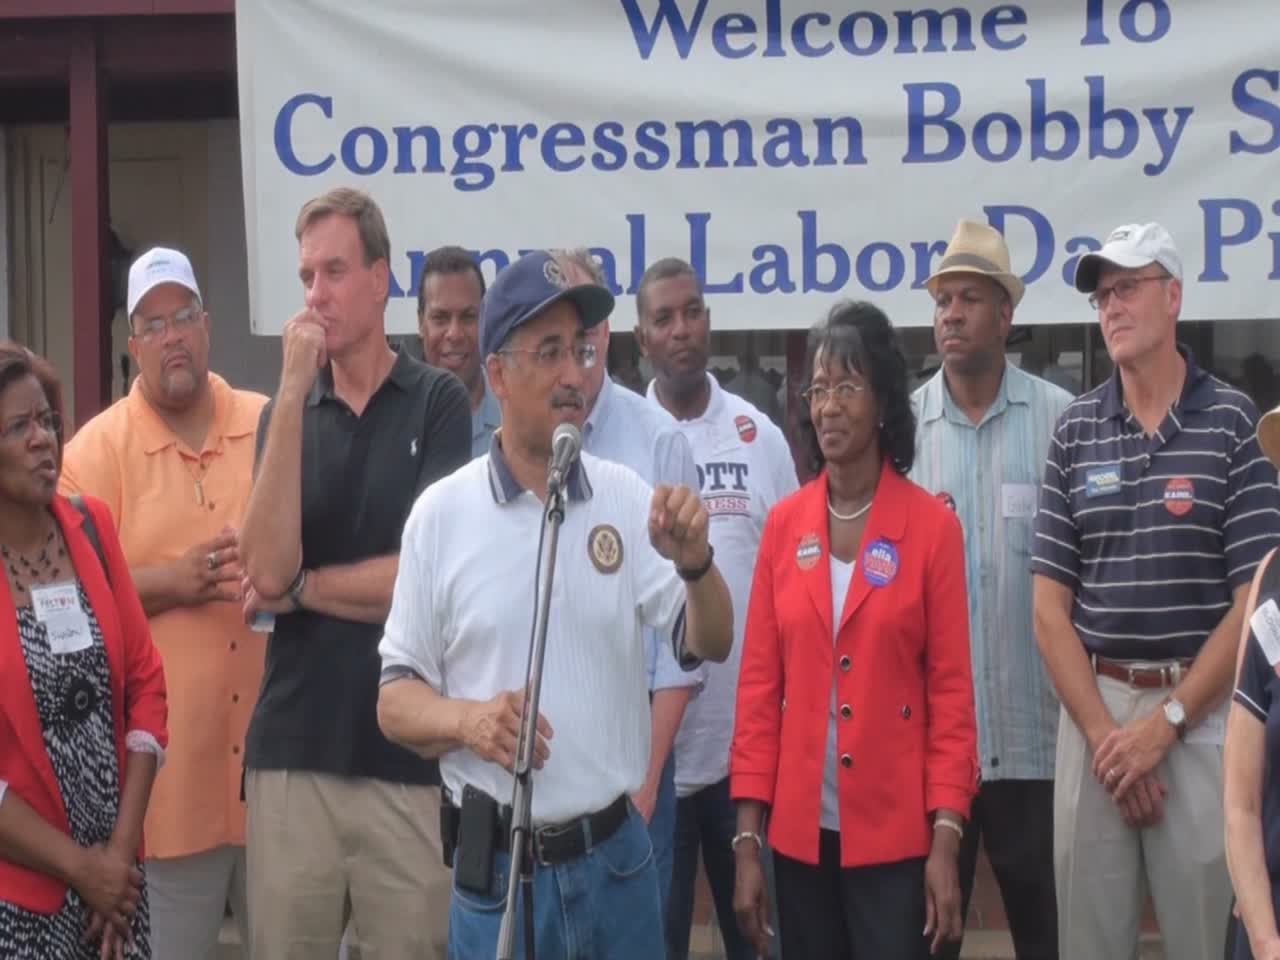 Bobby Scott Labor Day 2012